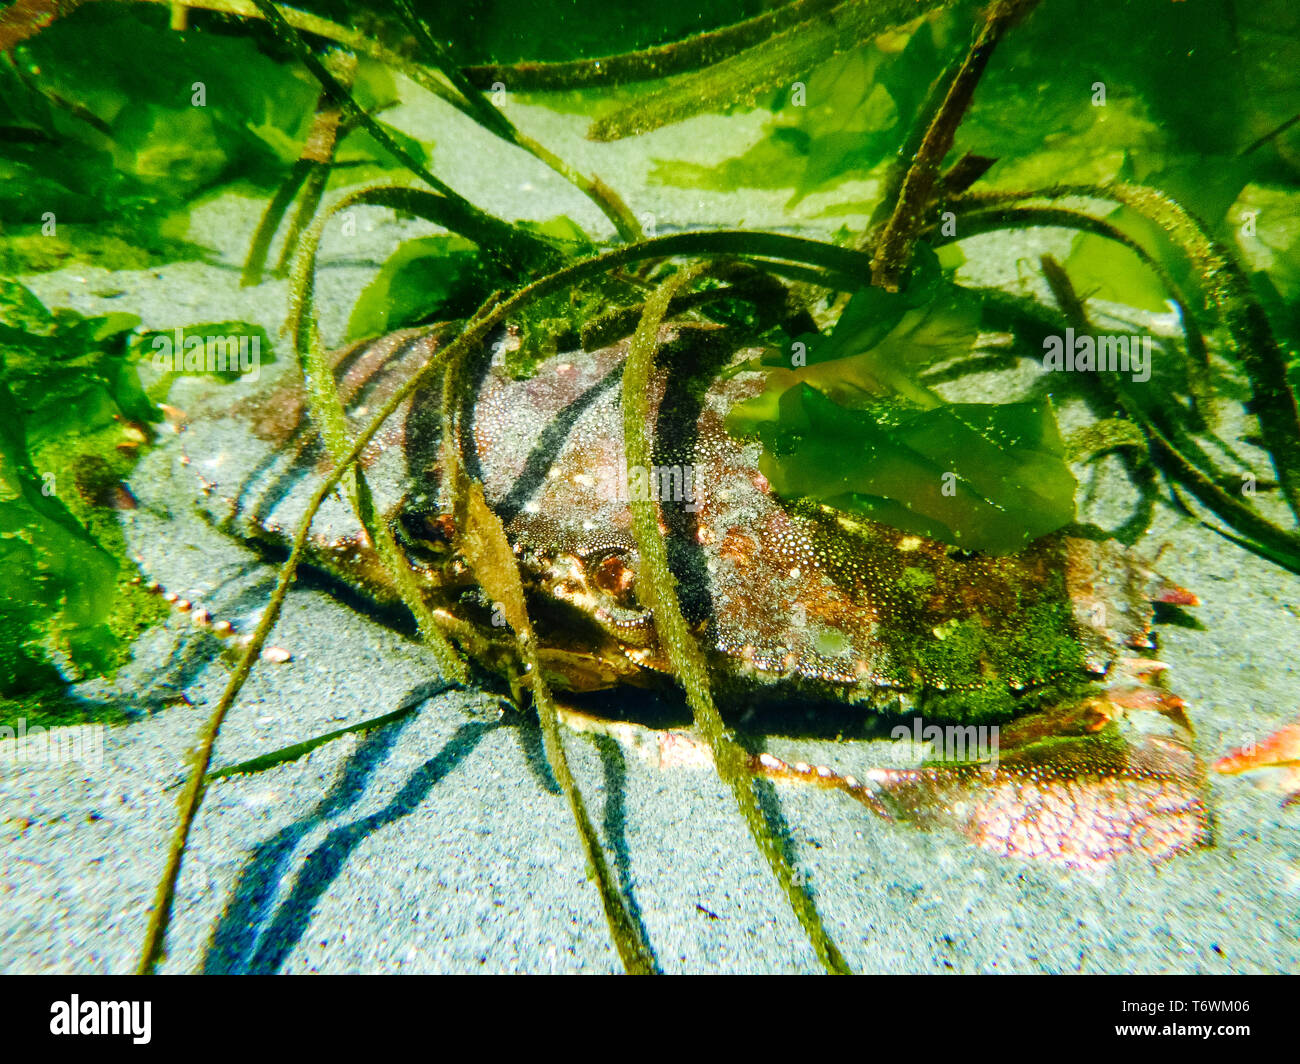 A red rock crab hiding under sea grass in a tide pool Stock Photo